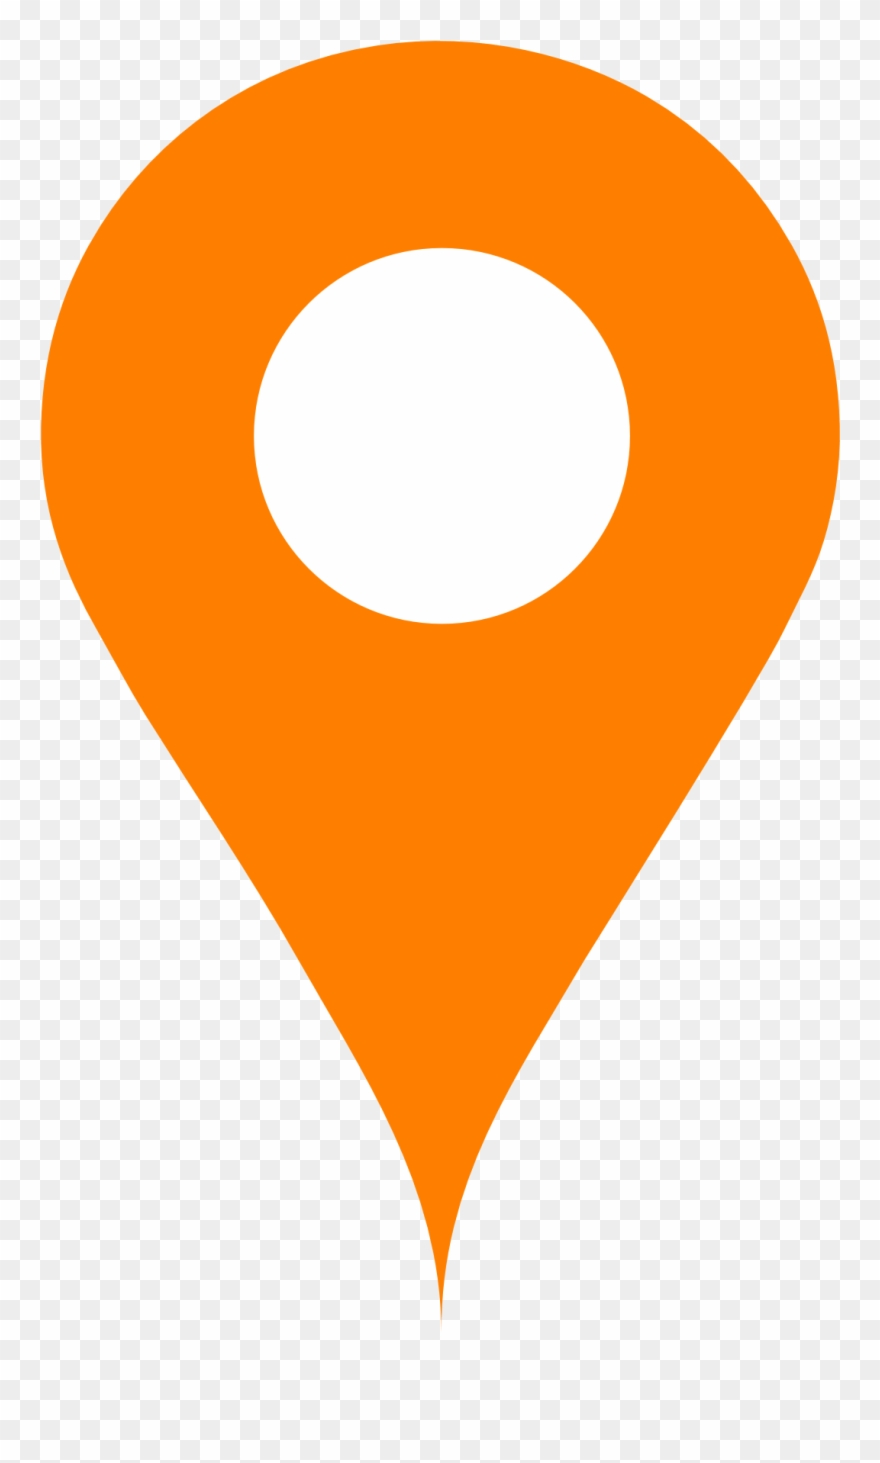 Location icon clipart graphic royalty free library Orange Map Pin - Orange Location Icon Png Clipart (#798120) - PinClipart graphic royalty free library